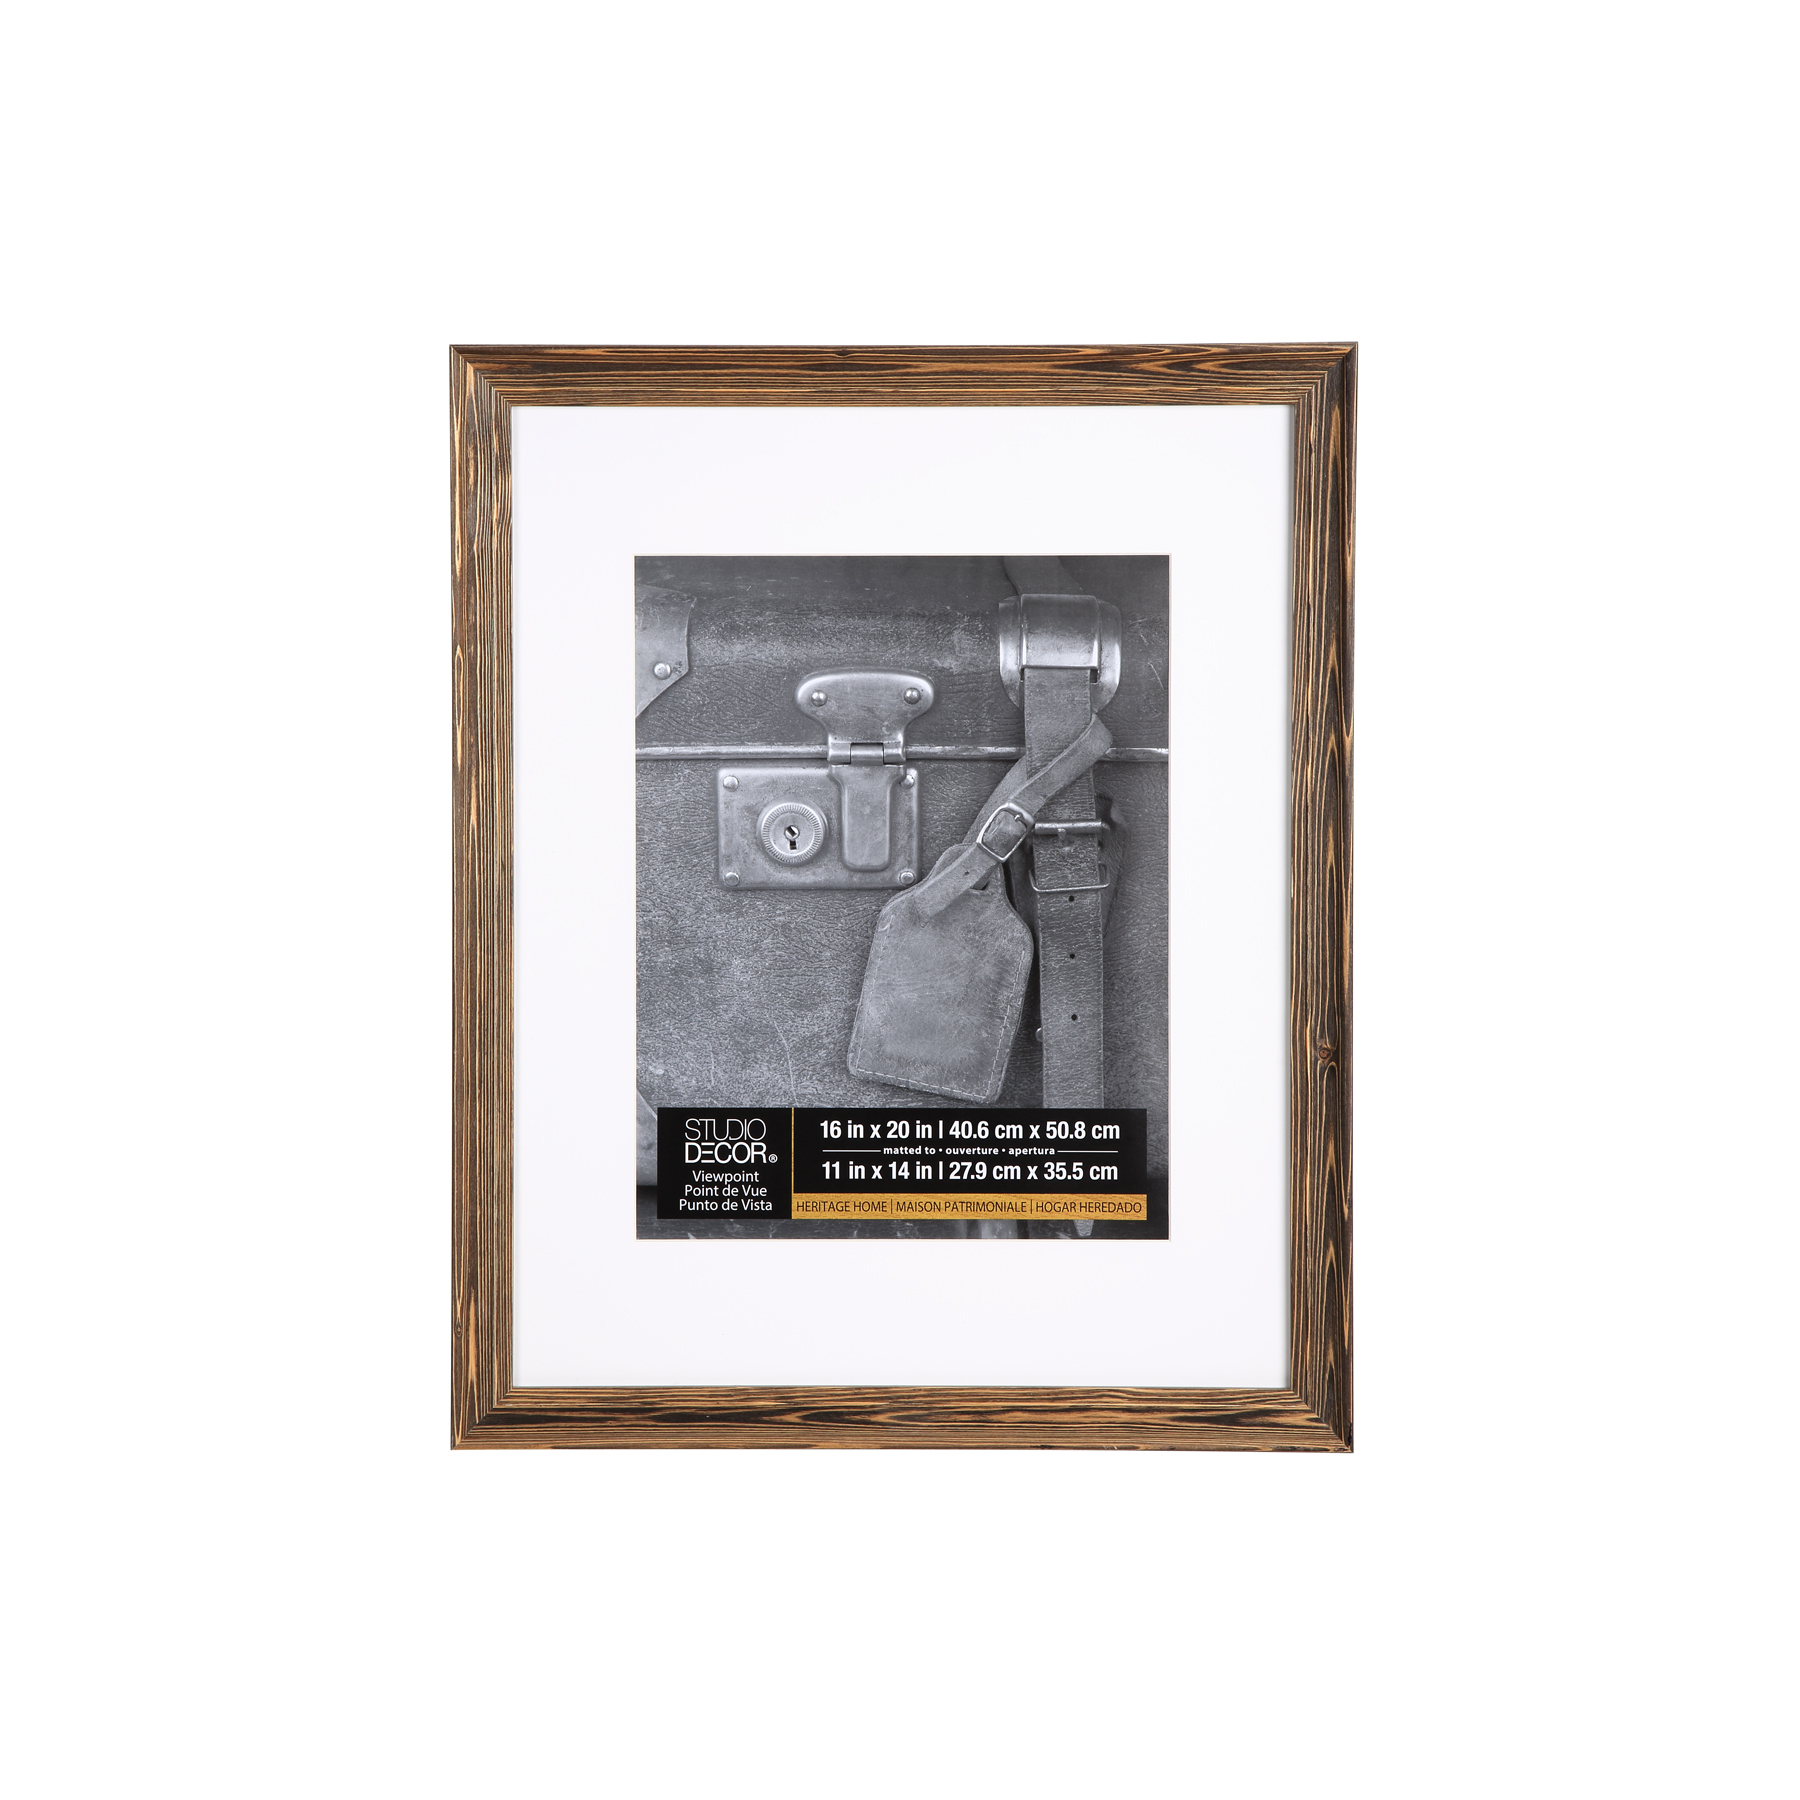 Studio décor viewpoint heritage home wood grain frame